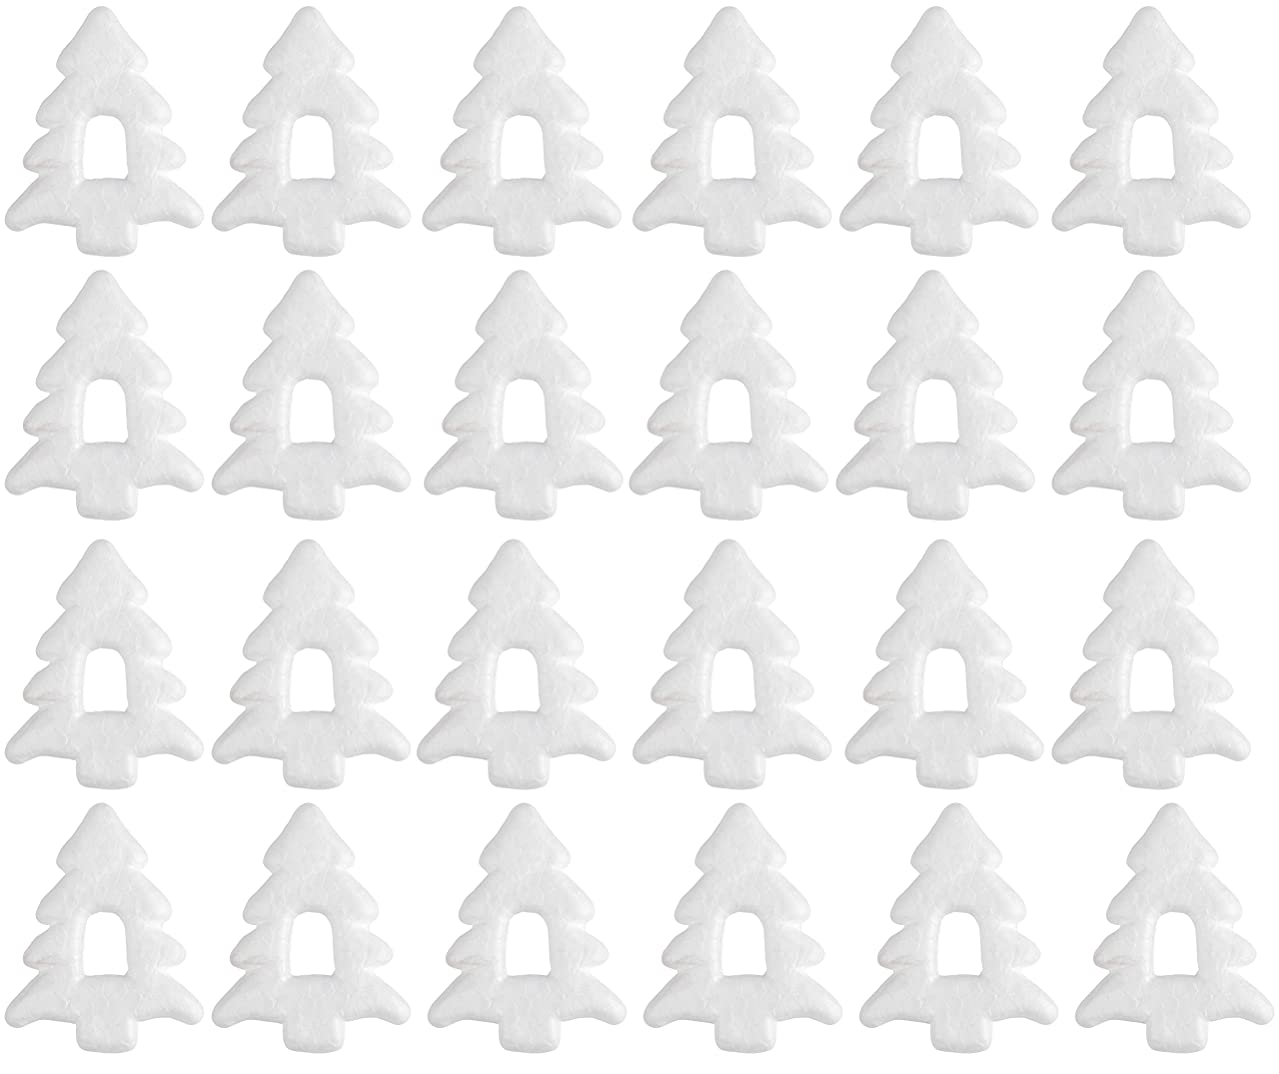 Craft Foam - 24-Pack Christmas Tree Shaped Foam for DIY Crafts Project, Kids Art Class, Winter Holiday Ornament Decorations, White Polystyrene Foam, Mini Hollow Out Design, 2.8 x 3.6 x 0.5 inches